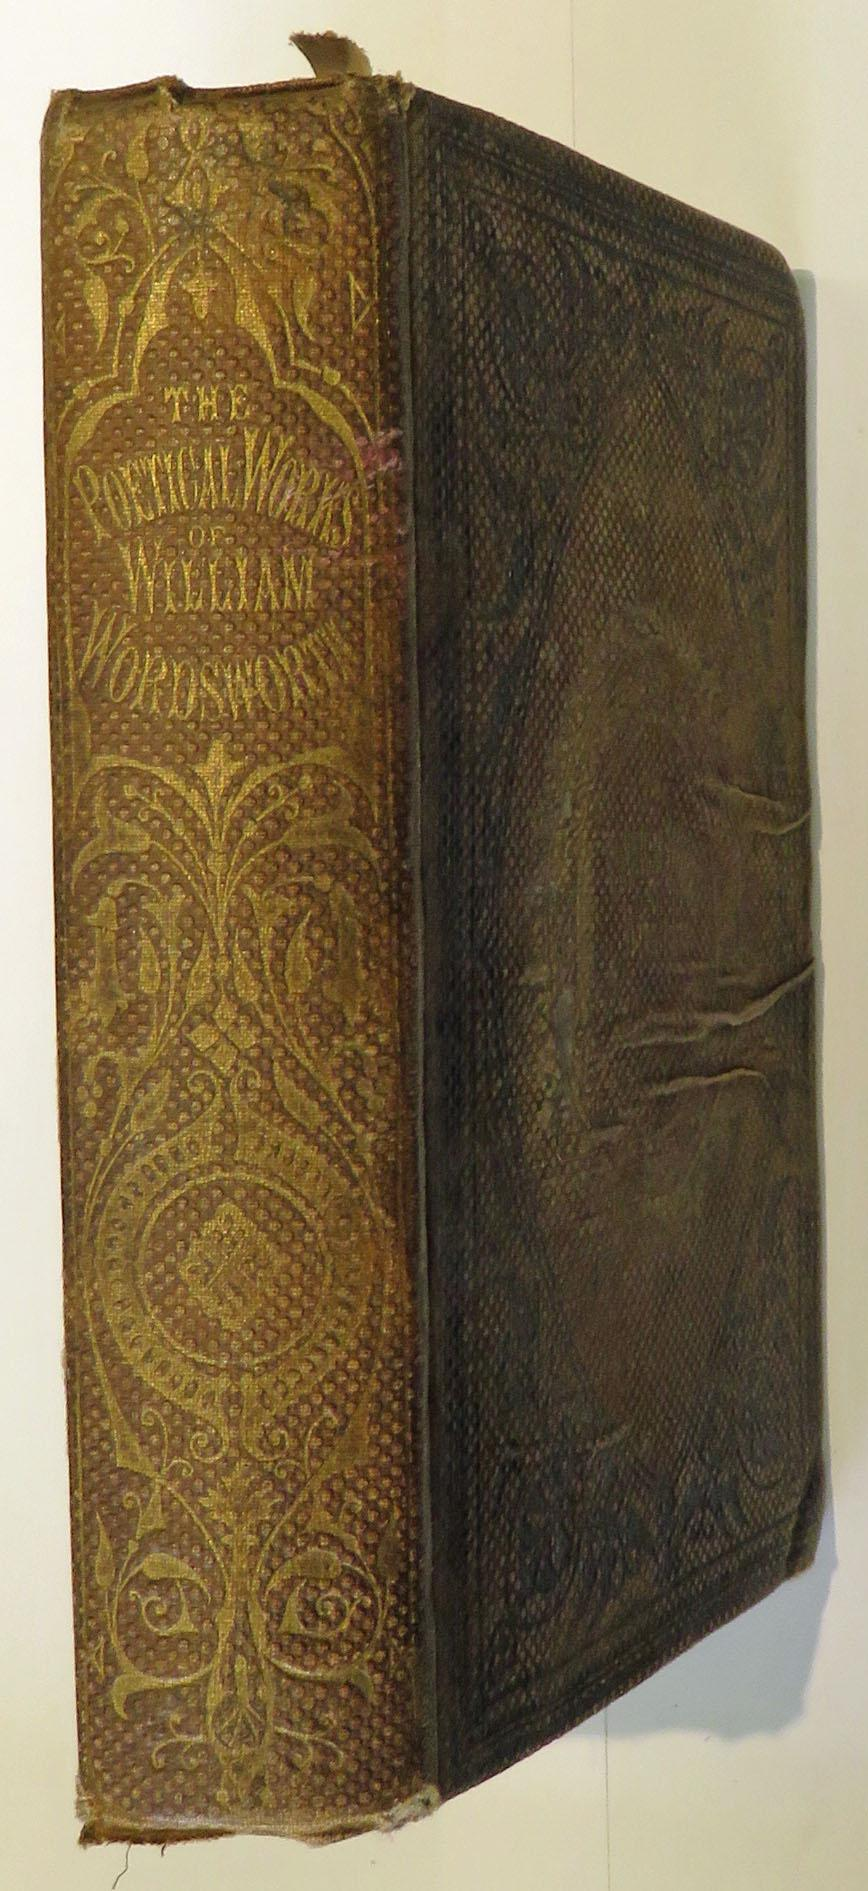 The Poetical Works of William Wordsworth With Life